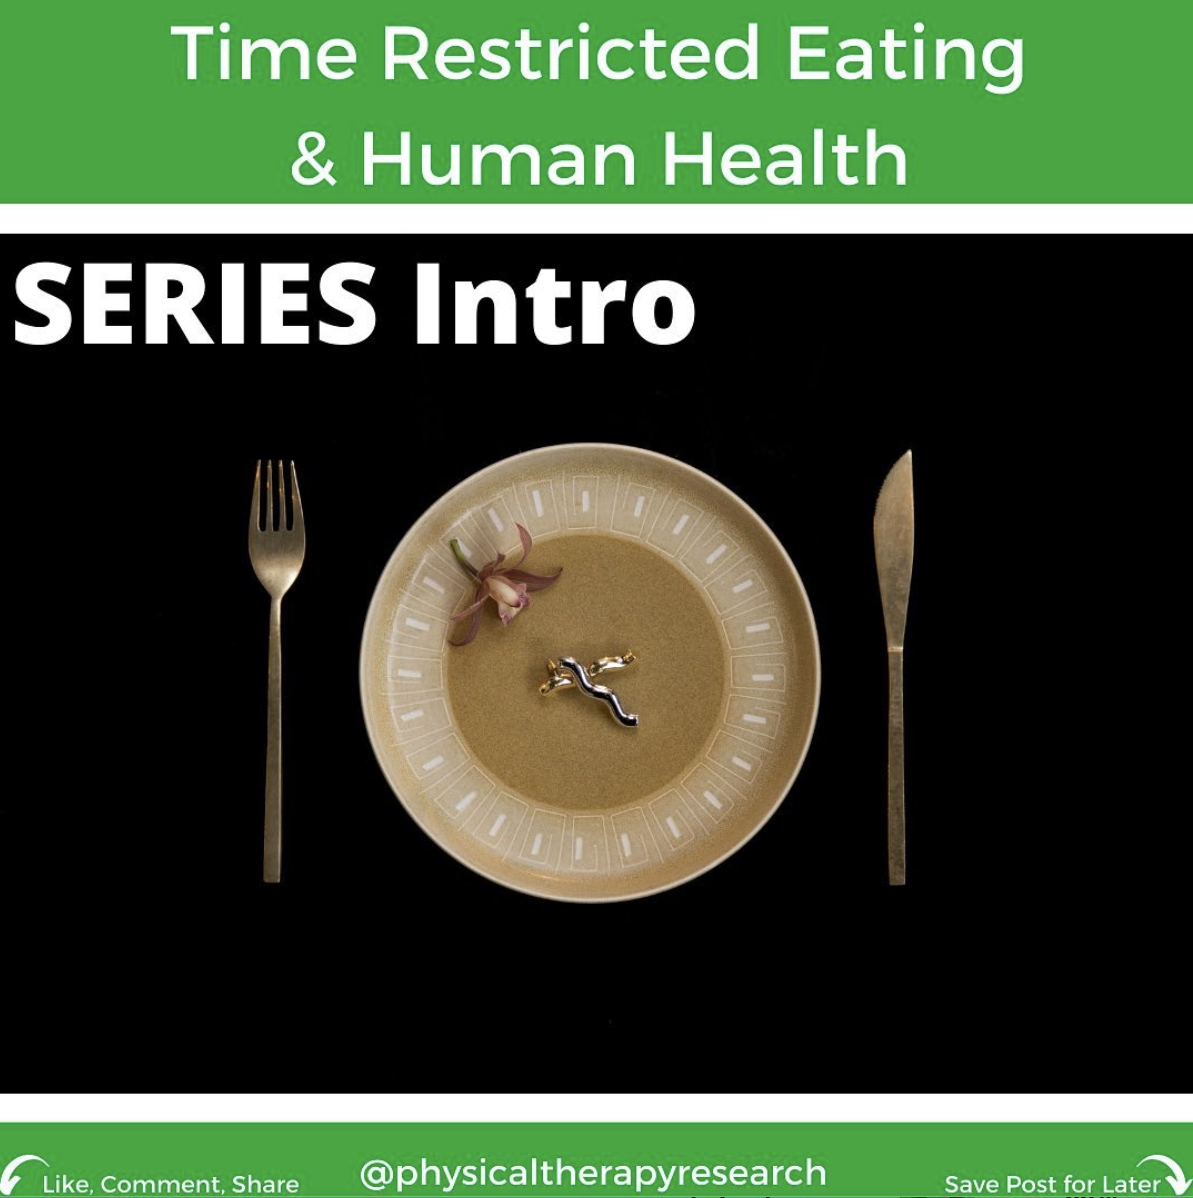 Time Restricted Eating and Human Health Part 1